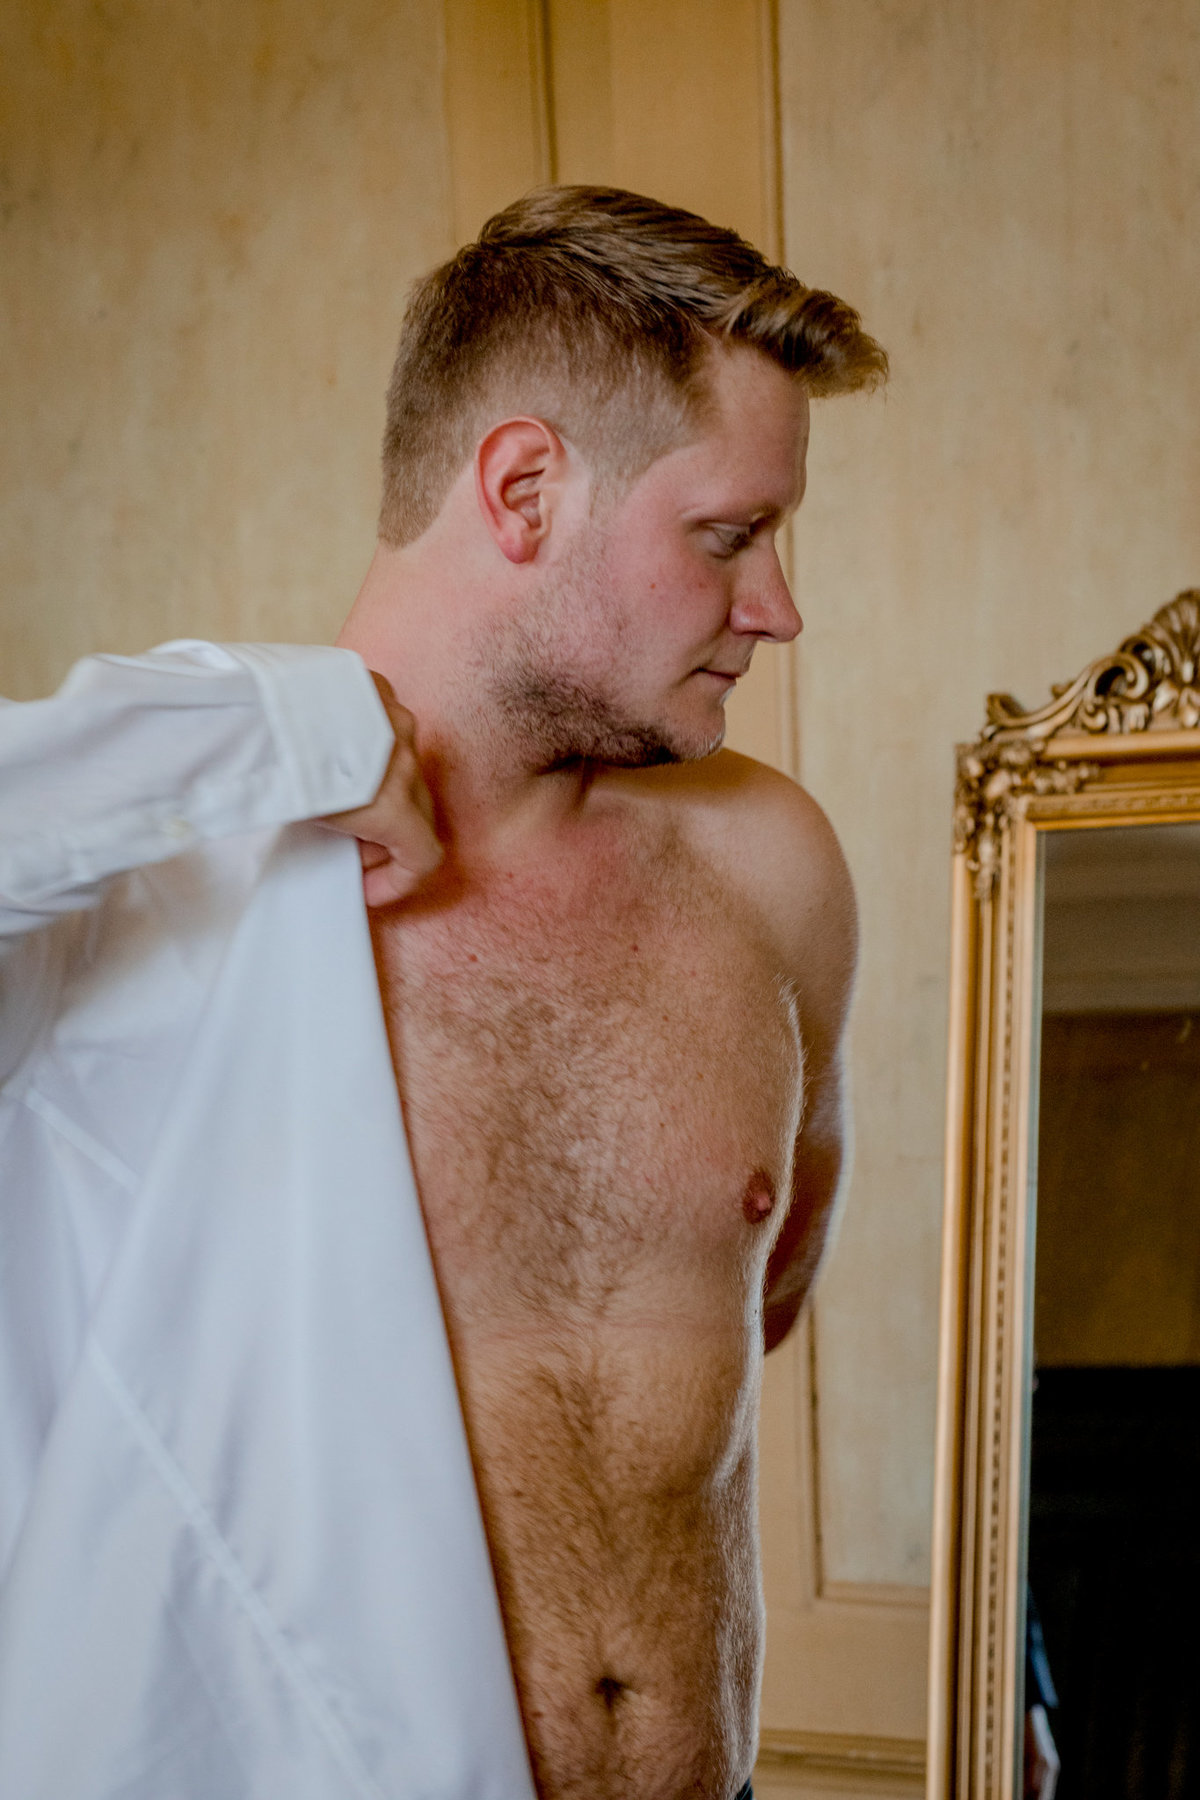 Groom getting ready and putting his white shirt on